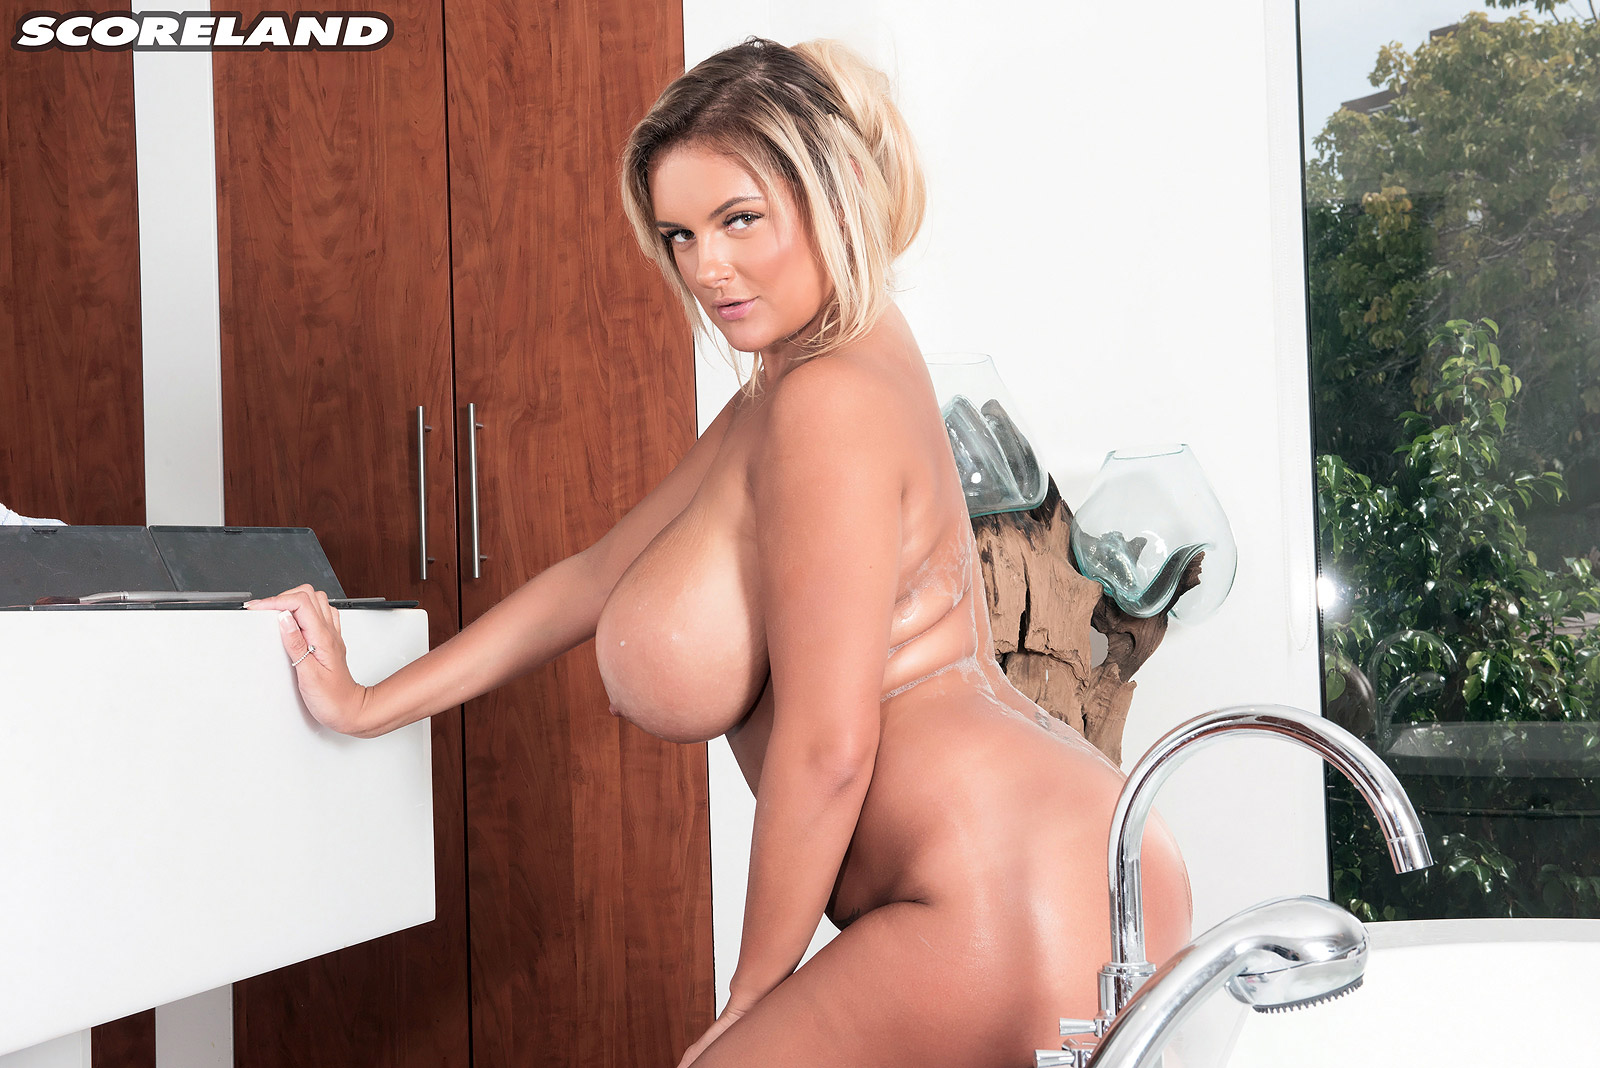 Katie Thornton Huge Breasts Personal Care Bathtime